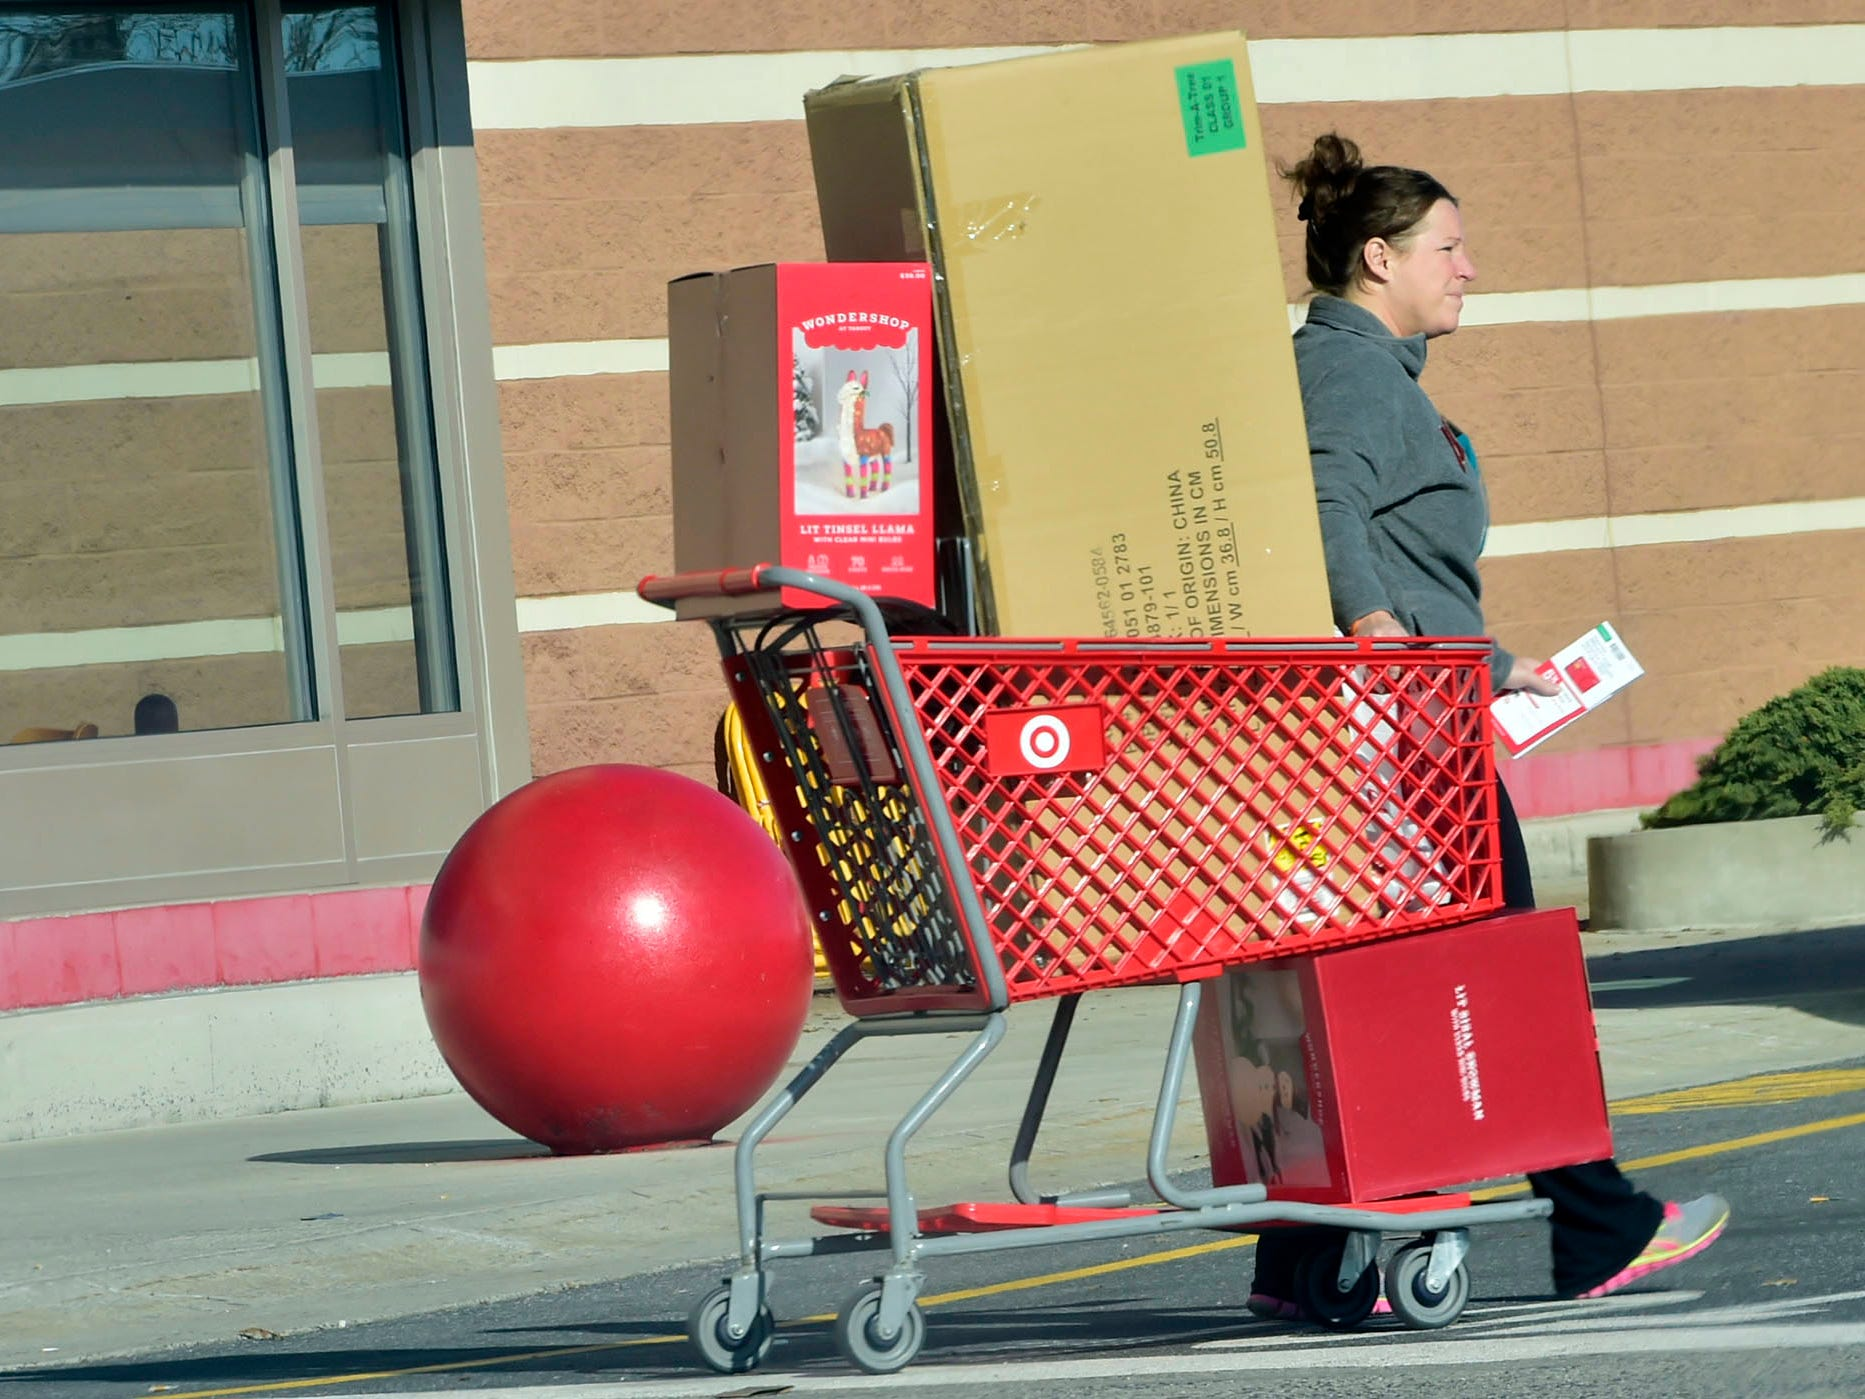 A woman pulls a cart filled with purchases from Target at Chambersburg Crossing on Friday, November 23, 2018. Shoppers were at the malls and stores looking for great deals on Black Friday.